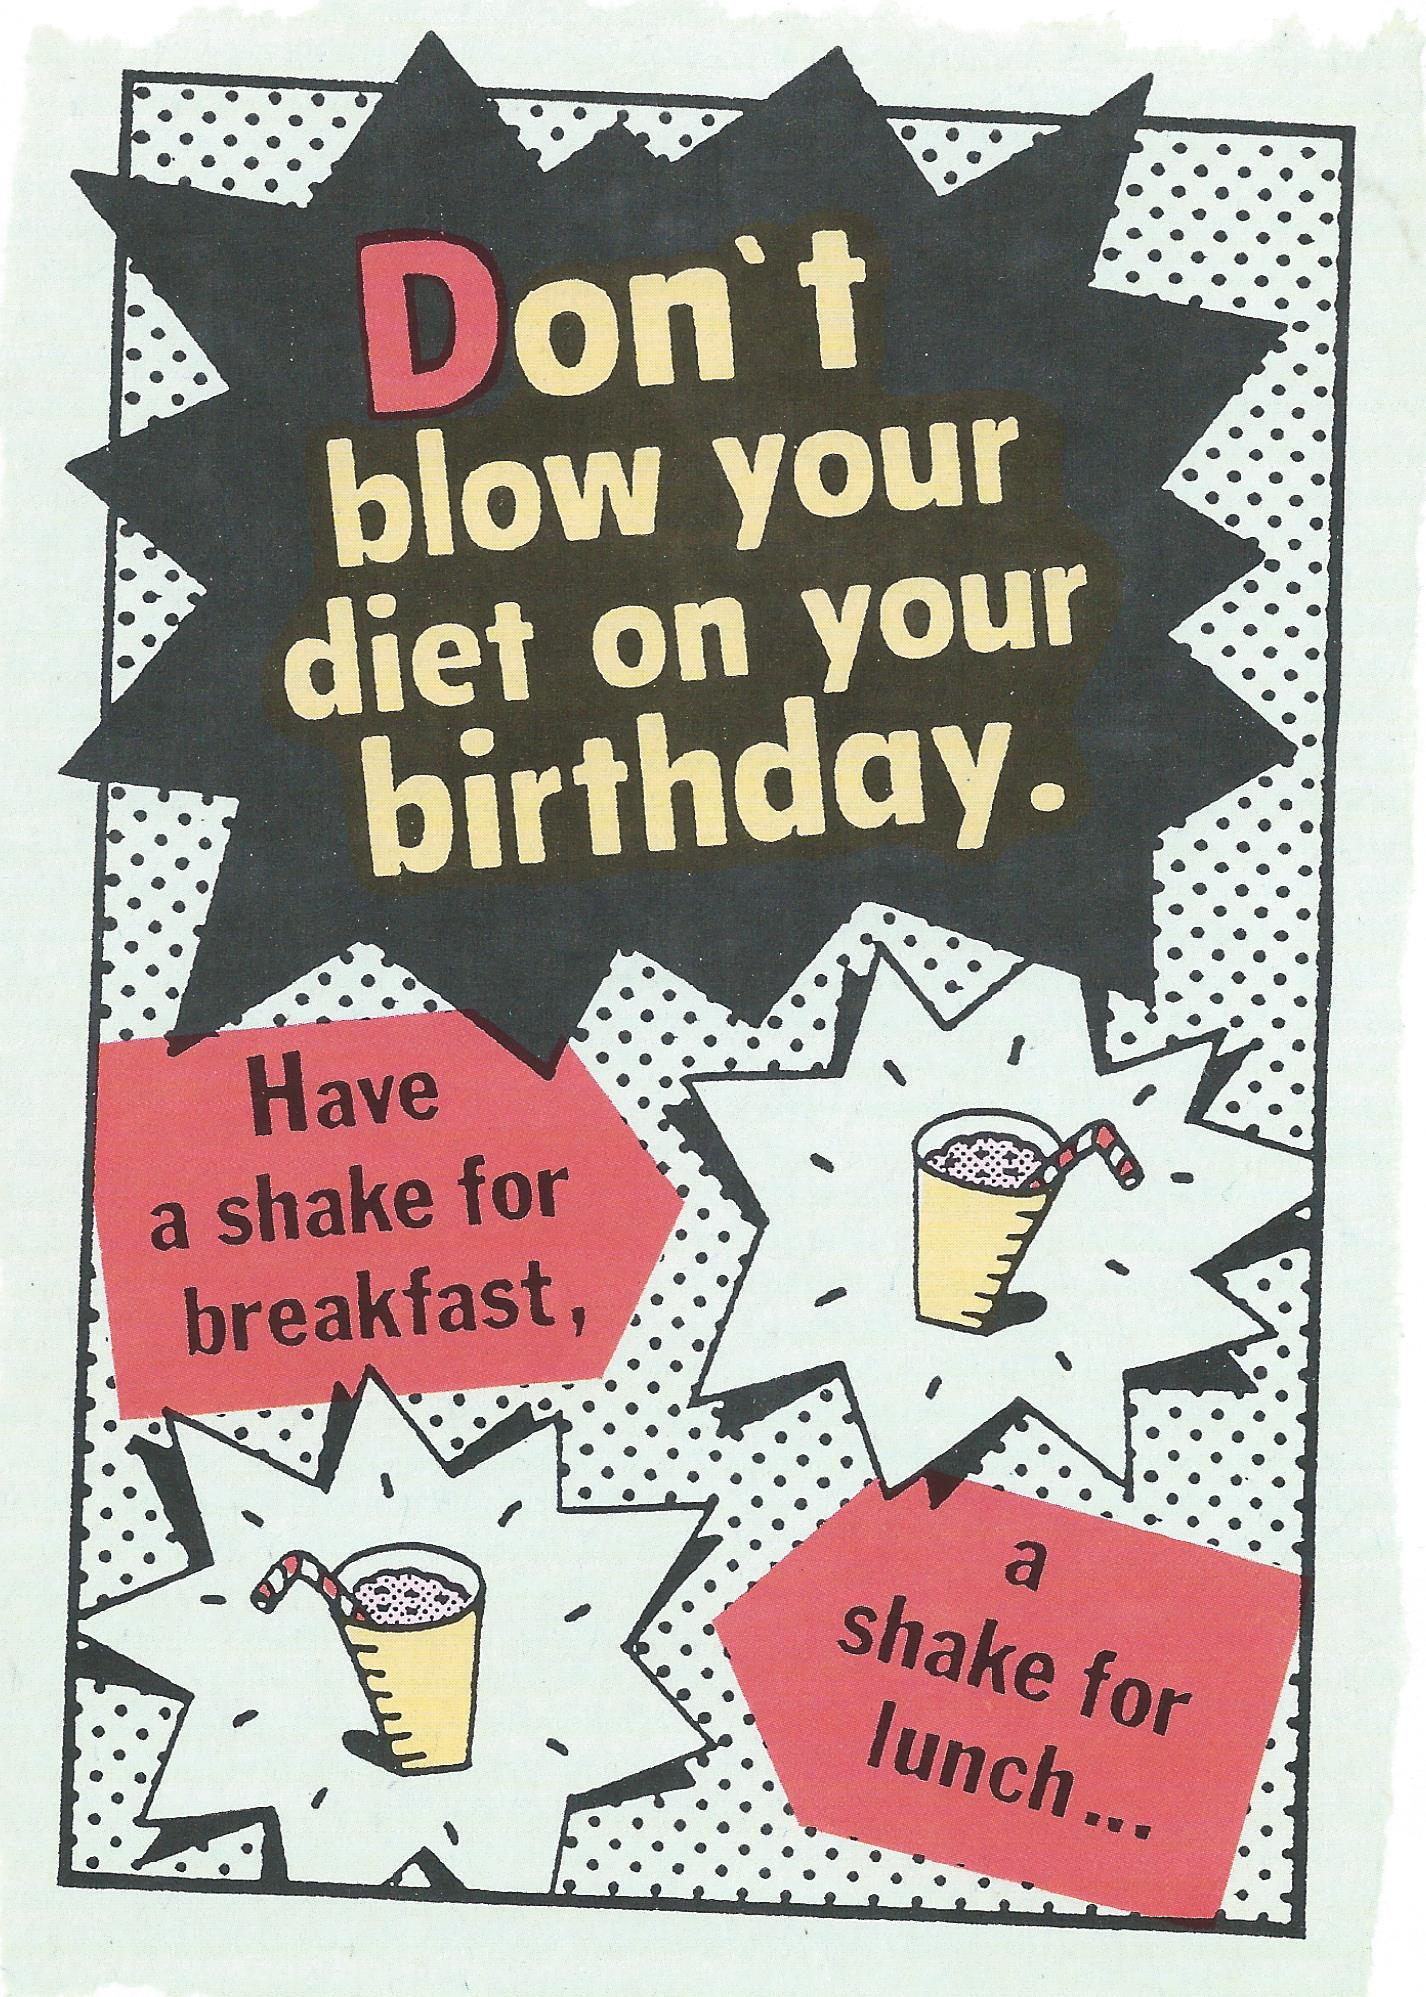 Don't blow your diet on your birthday. Have a shake for breakfast, a shake for lunch...